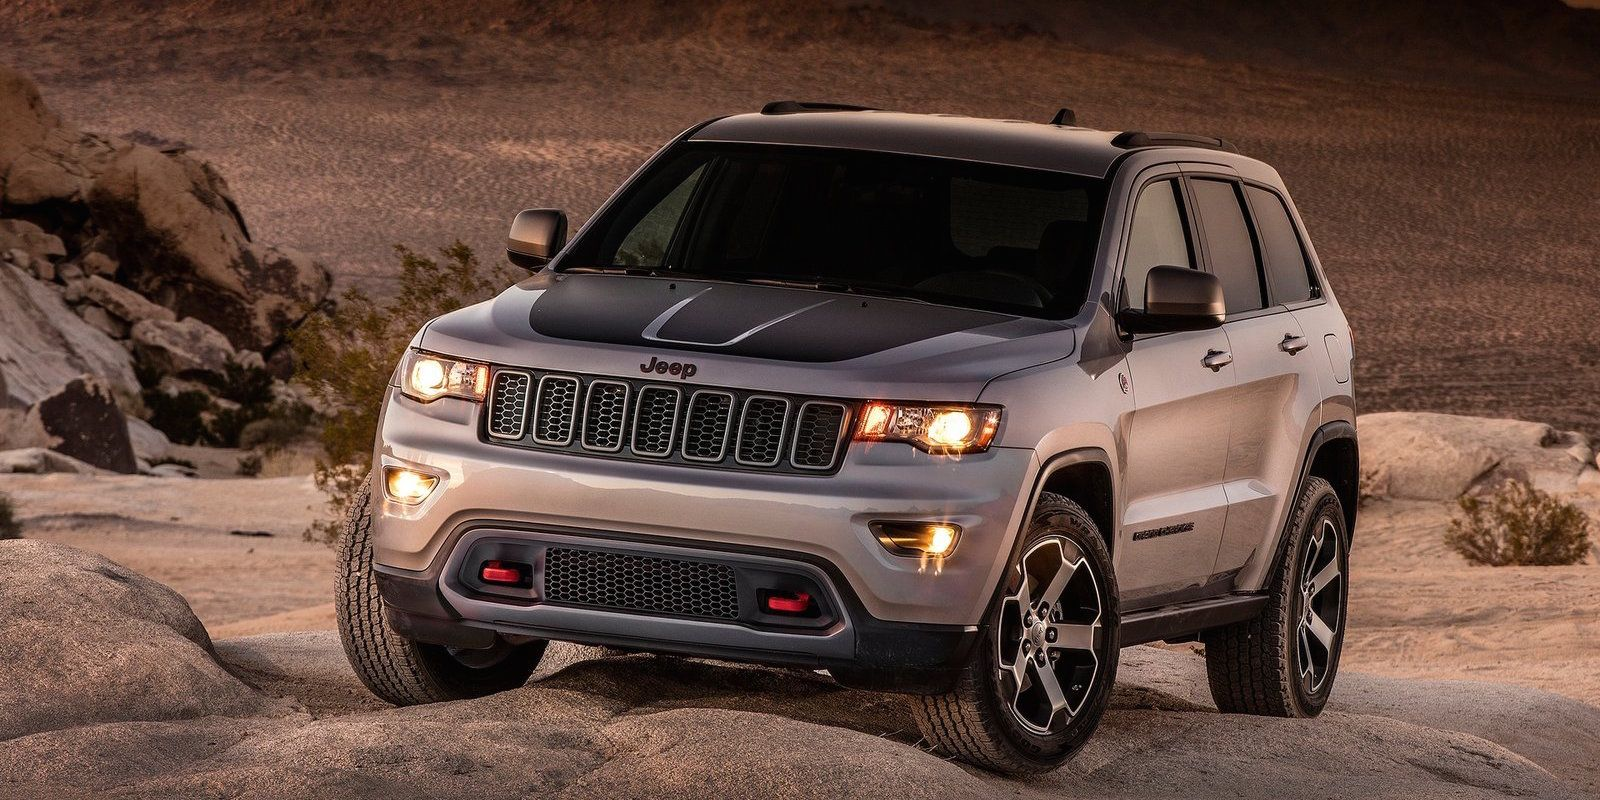 "<p>The Wrangler is Jeep's most capable off-roader, but it's far from luxurious. With the <a href=""http://www.roadandtrack.com/car-shows/new-york-auto-show/news/a28573/2017-jeep-grand-cherokee-trailhawk-new-york-auto-show/"" target=""_blank"">recent addition of a Trailhawk package</a>, Jeep added some all-terrain performance to the more plush Grand Cherokee, striking a nice balance between an on- and off-road SUV. Think of it as a Range Rover on a budget.</p>"